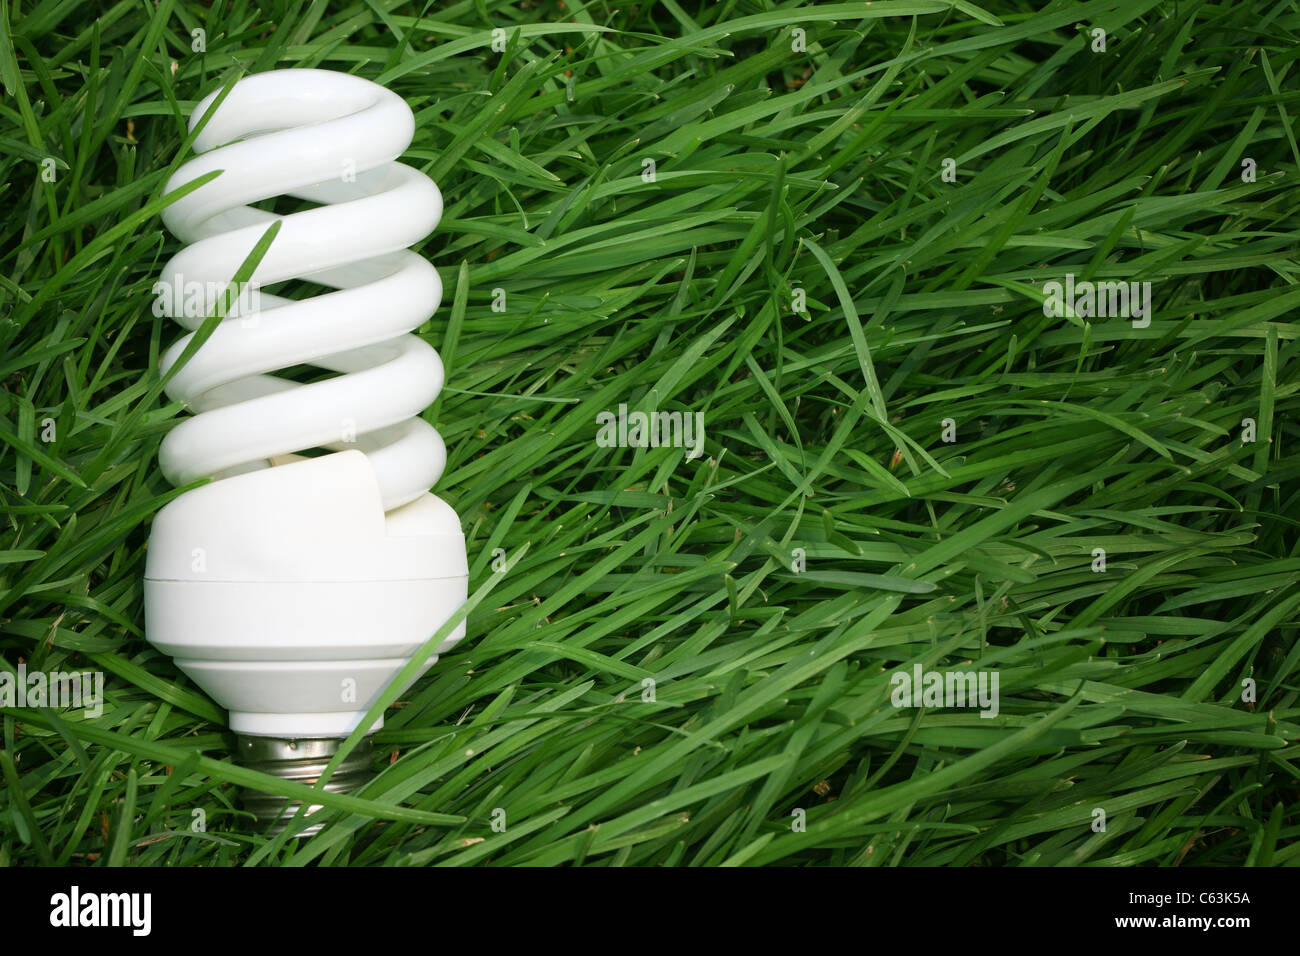 Energy saving lamp on green grass,energy-saving concept. - Stock Image